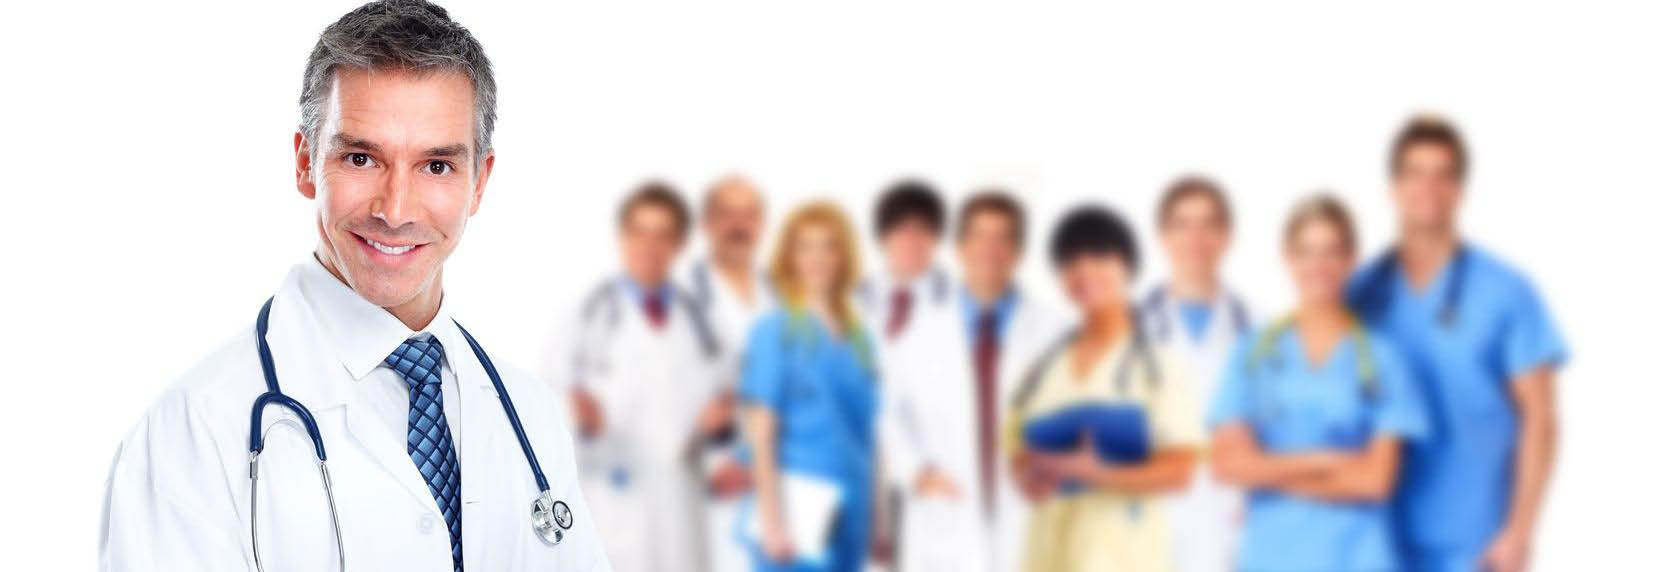 doctor near me walk in clinic clinic near me doctor appointments